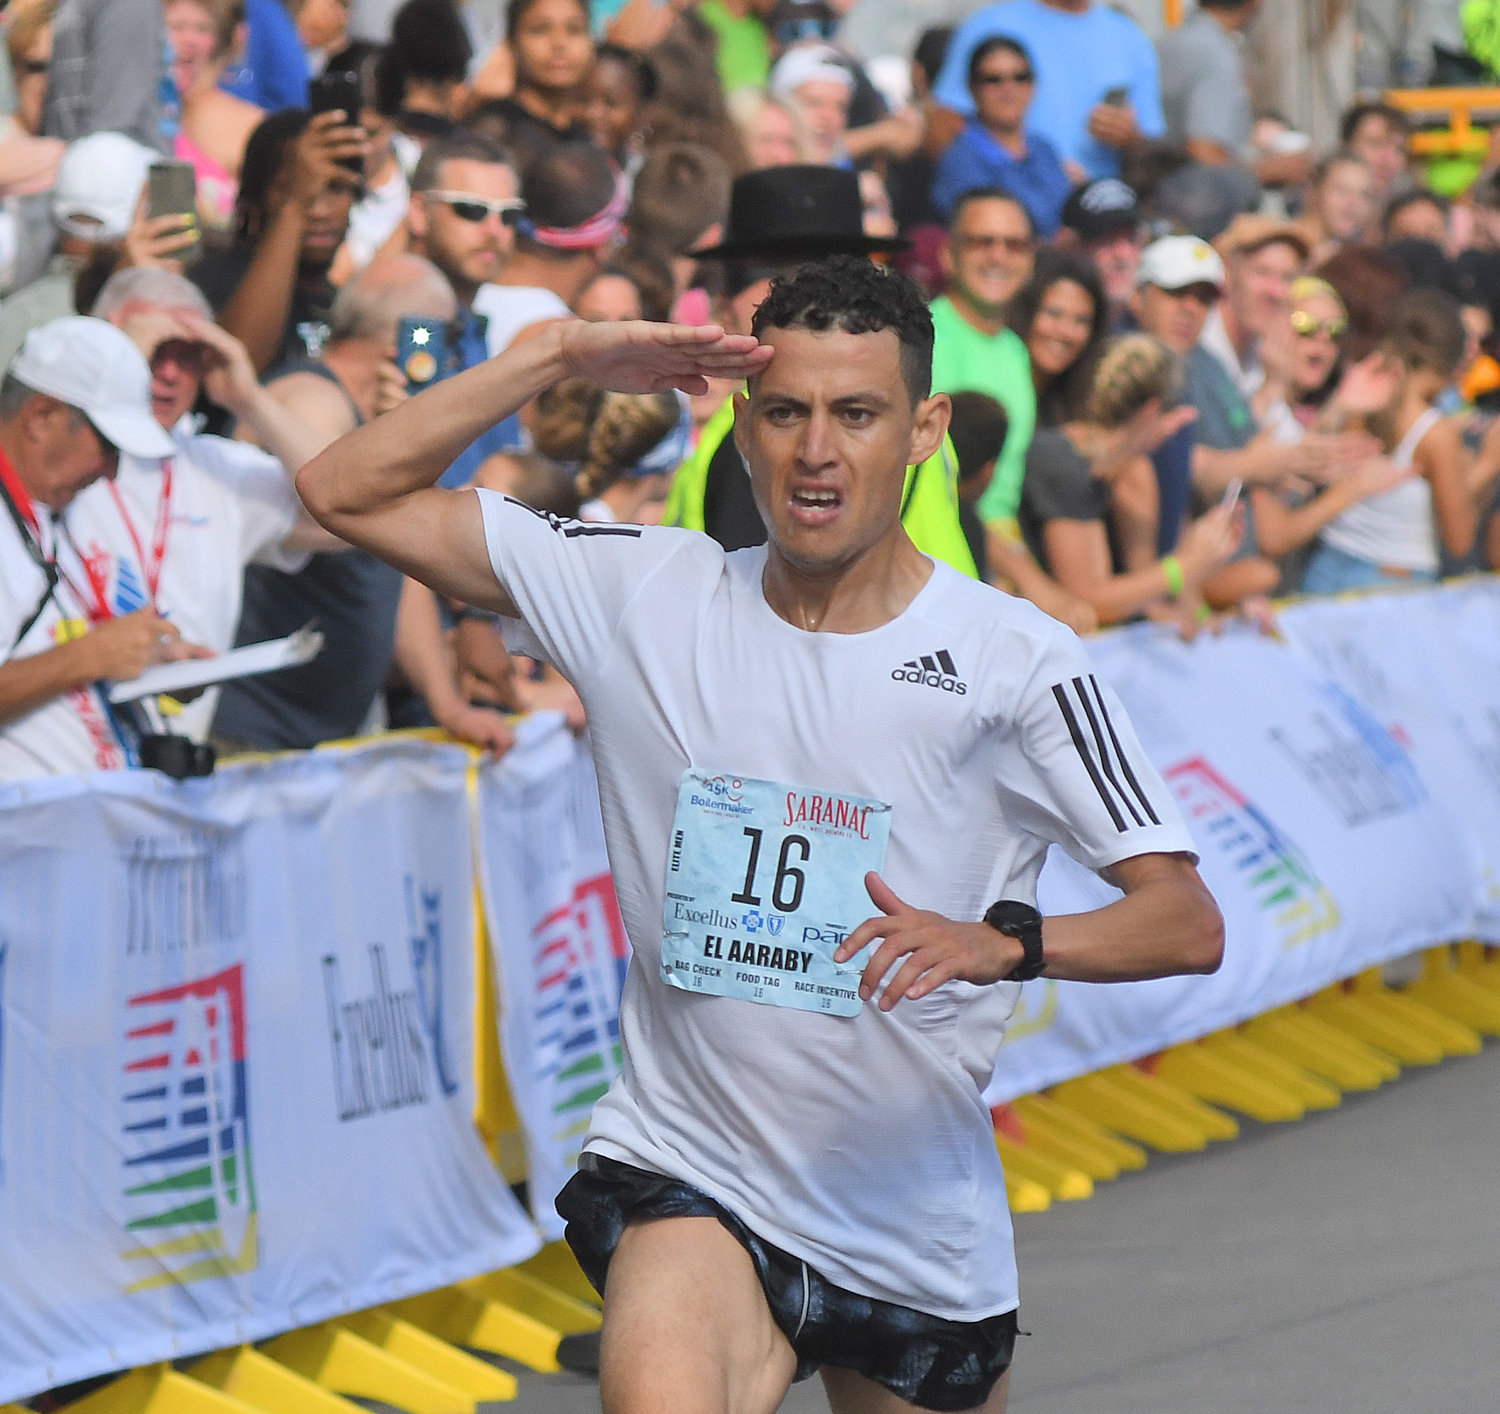 SECOND-BEST — Mohamed Reda El Aaraby salutes as he crosses the finish line in second place at the Boilermaker 15K Sunday. The Moroccan's time of 43:39 was three seconds behind the winning time.